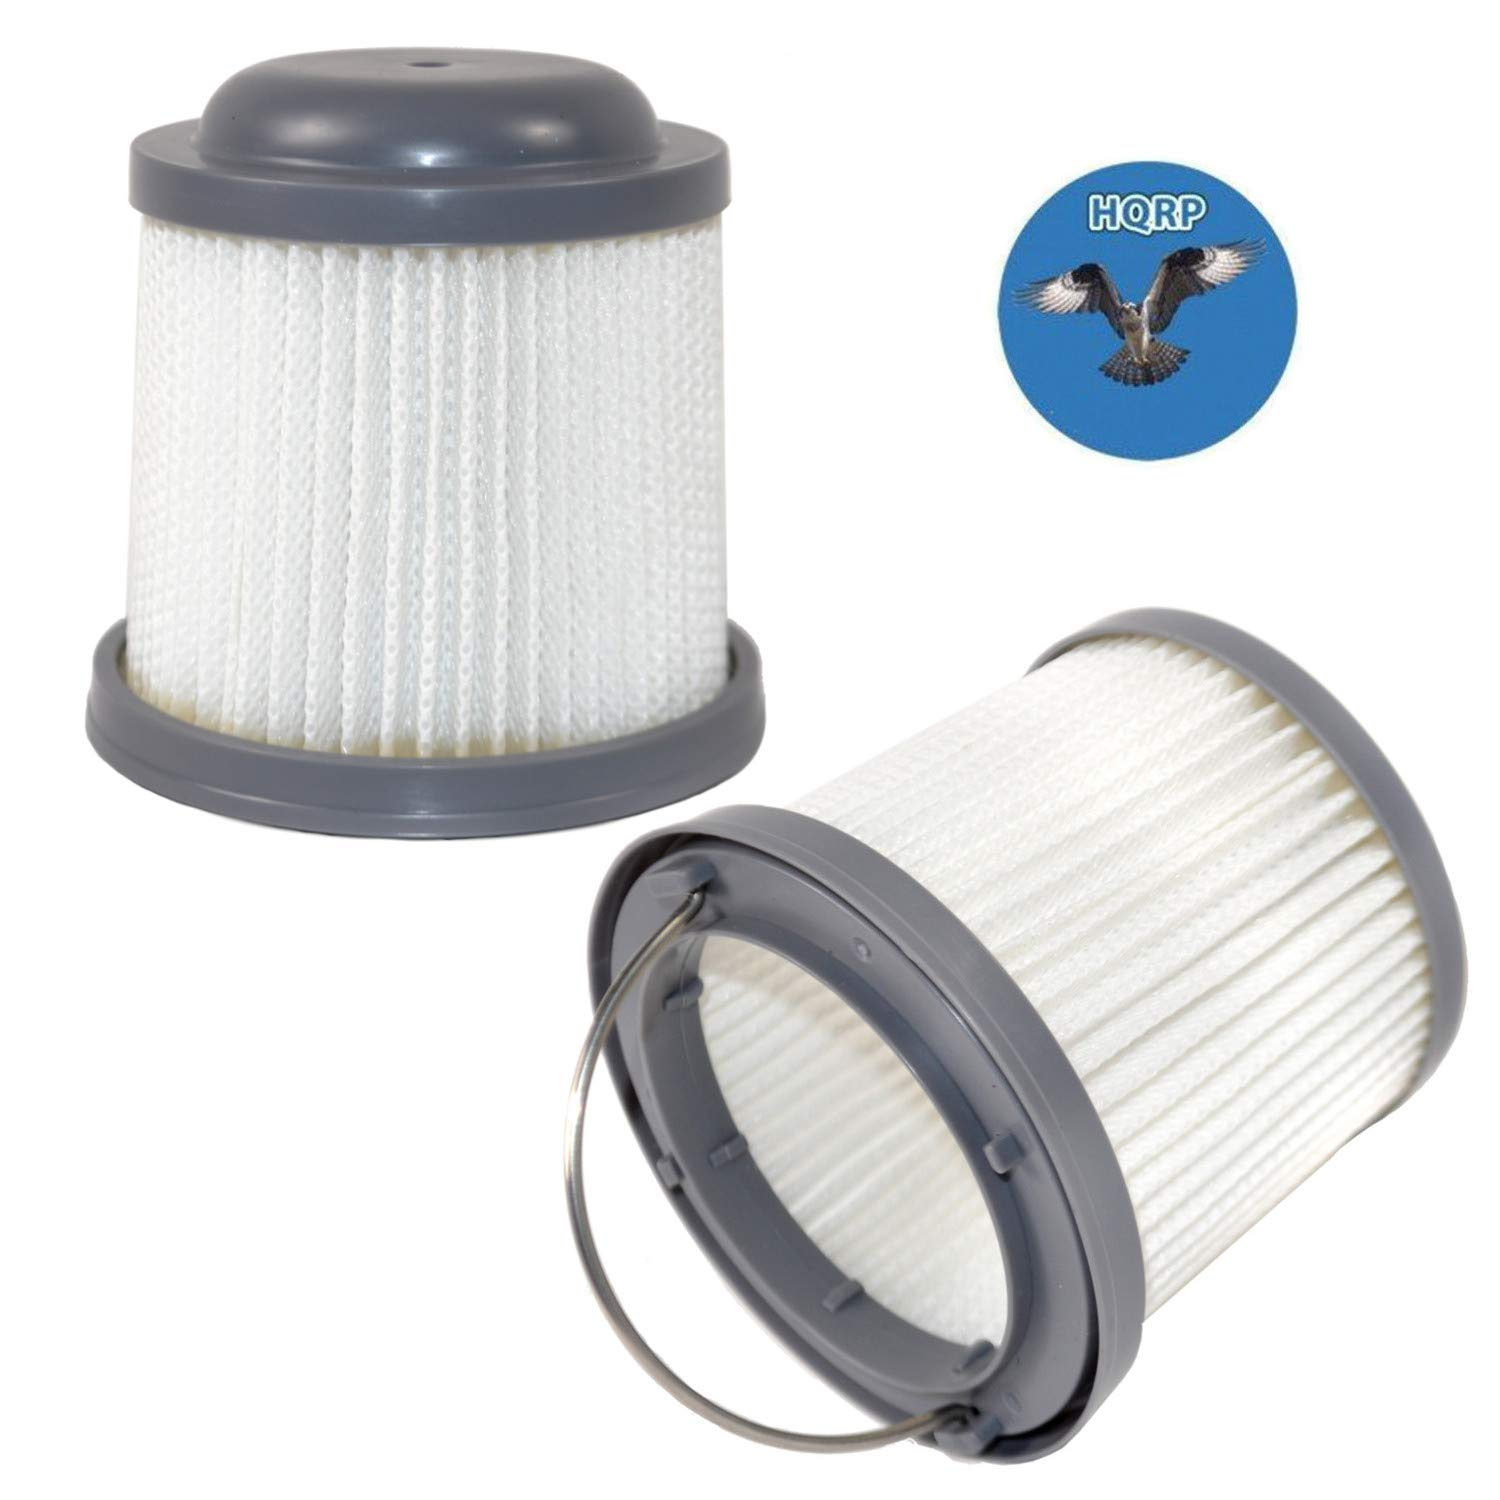 HQRP 2-Pack Washable Filter Compatible with Black & Decker BDH2000PL, BDH1600PL, BDH2020FLFH, BDH1620FLFH, BDH2020FL Flex Lithium Pivot Vac Vacuums by HQRP